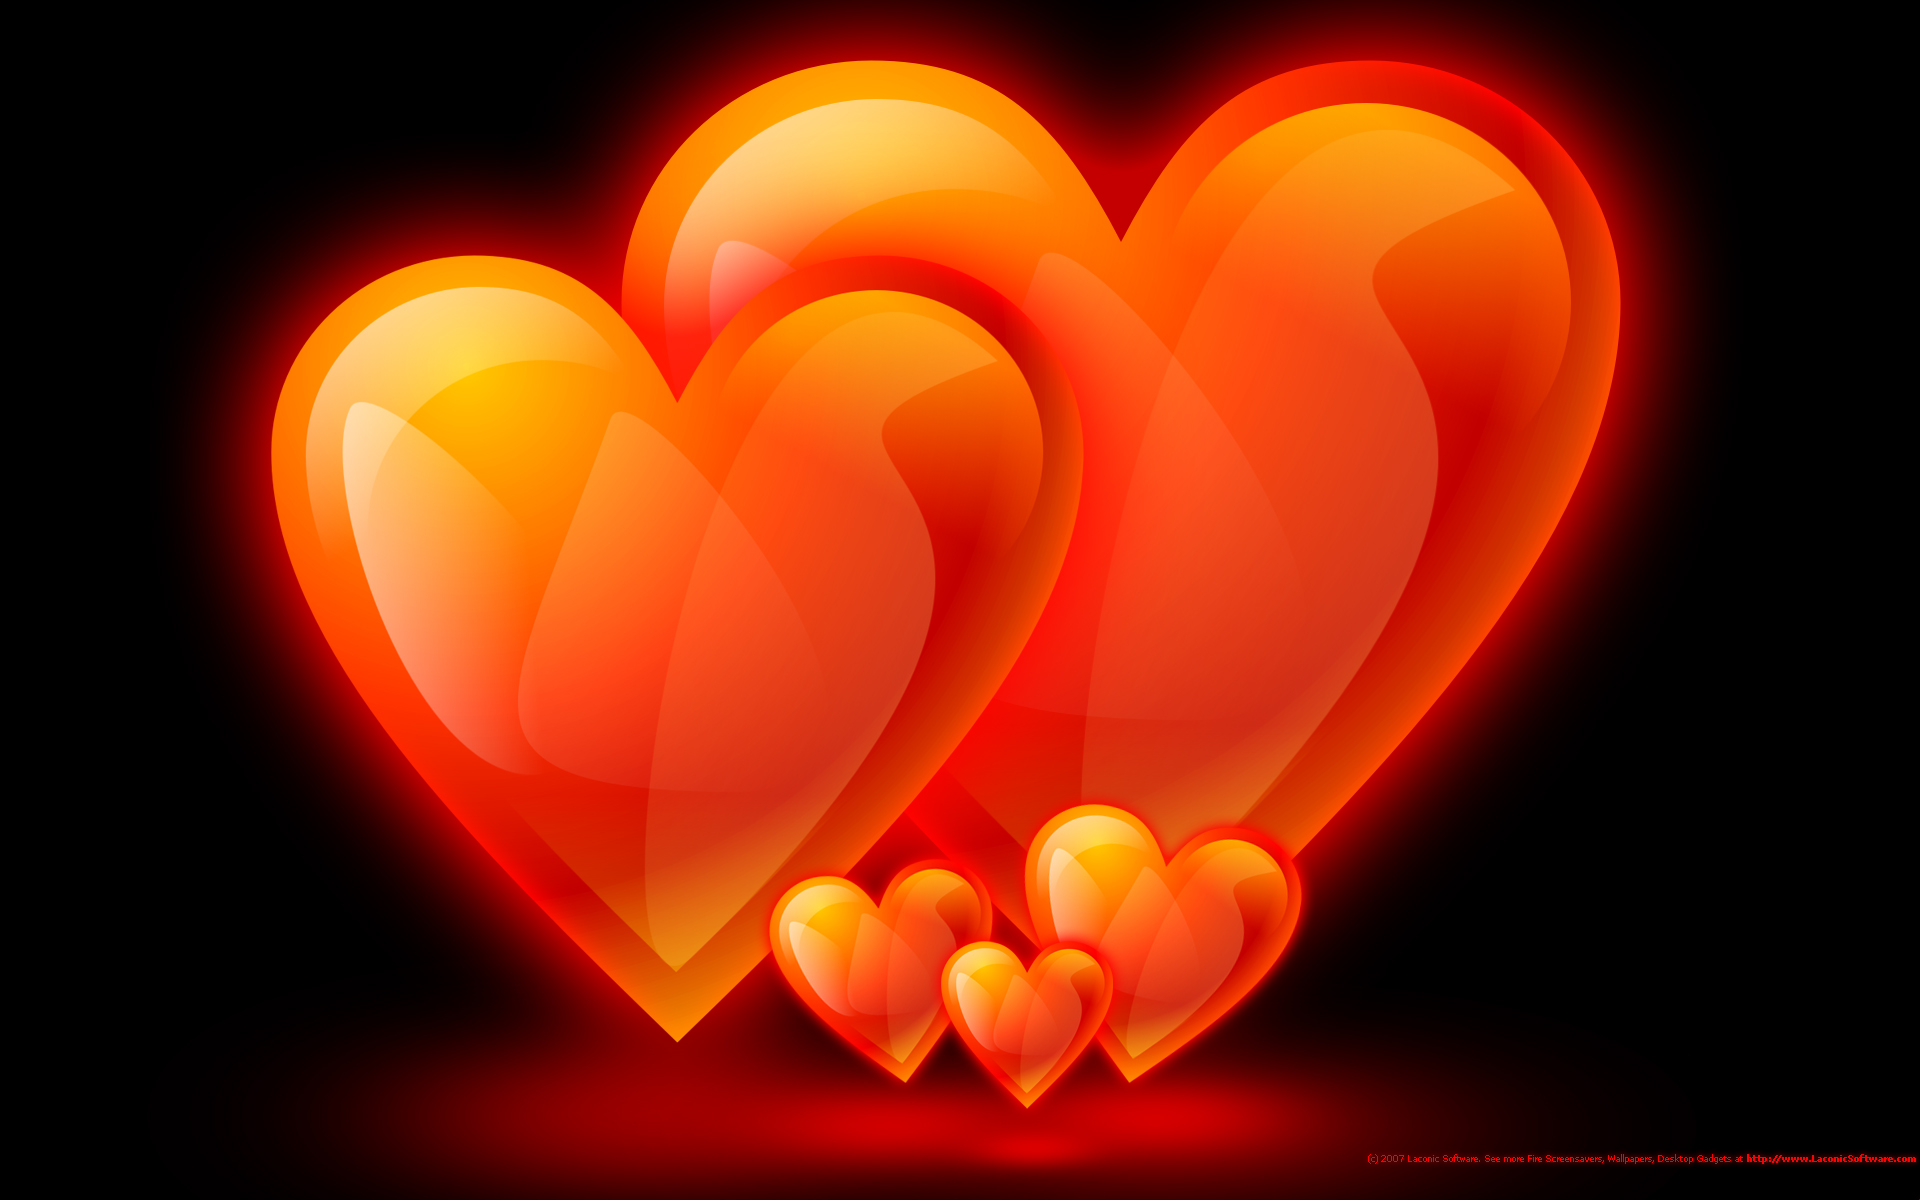 Fire Flame Hearts Family Screensavers Background wallpapers HD 1920x1200